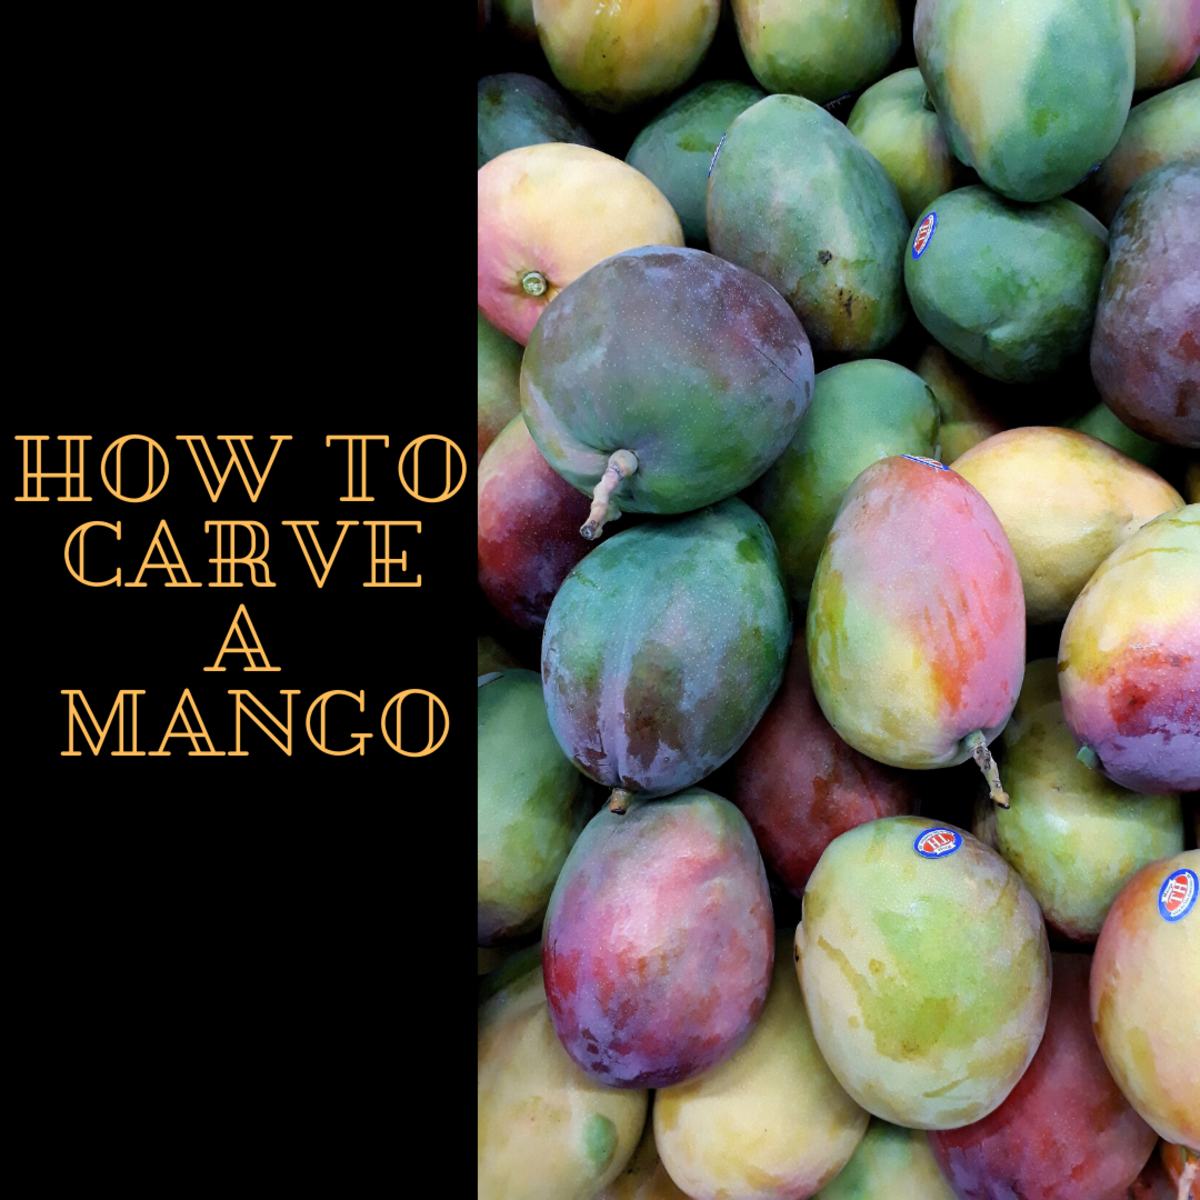 How to Carve a Mango (And Not Turn It Into Mush!)